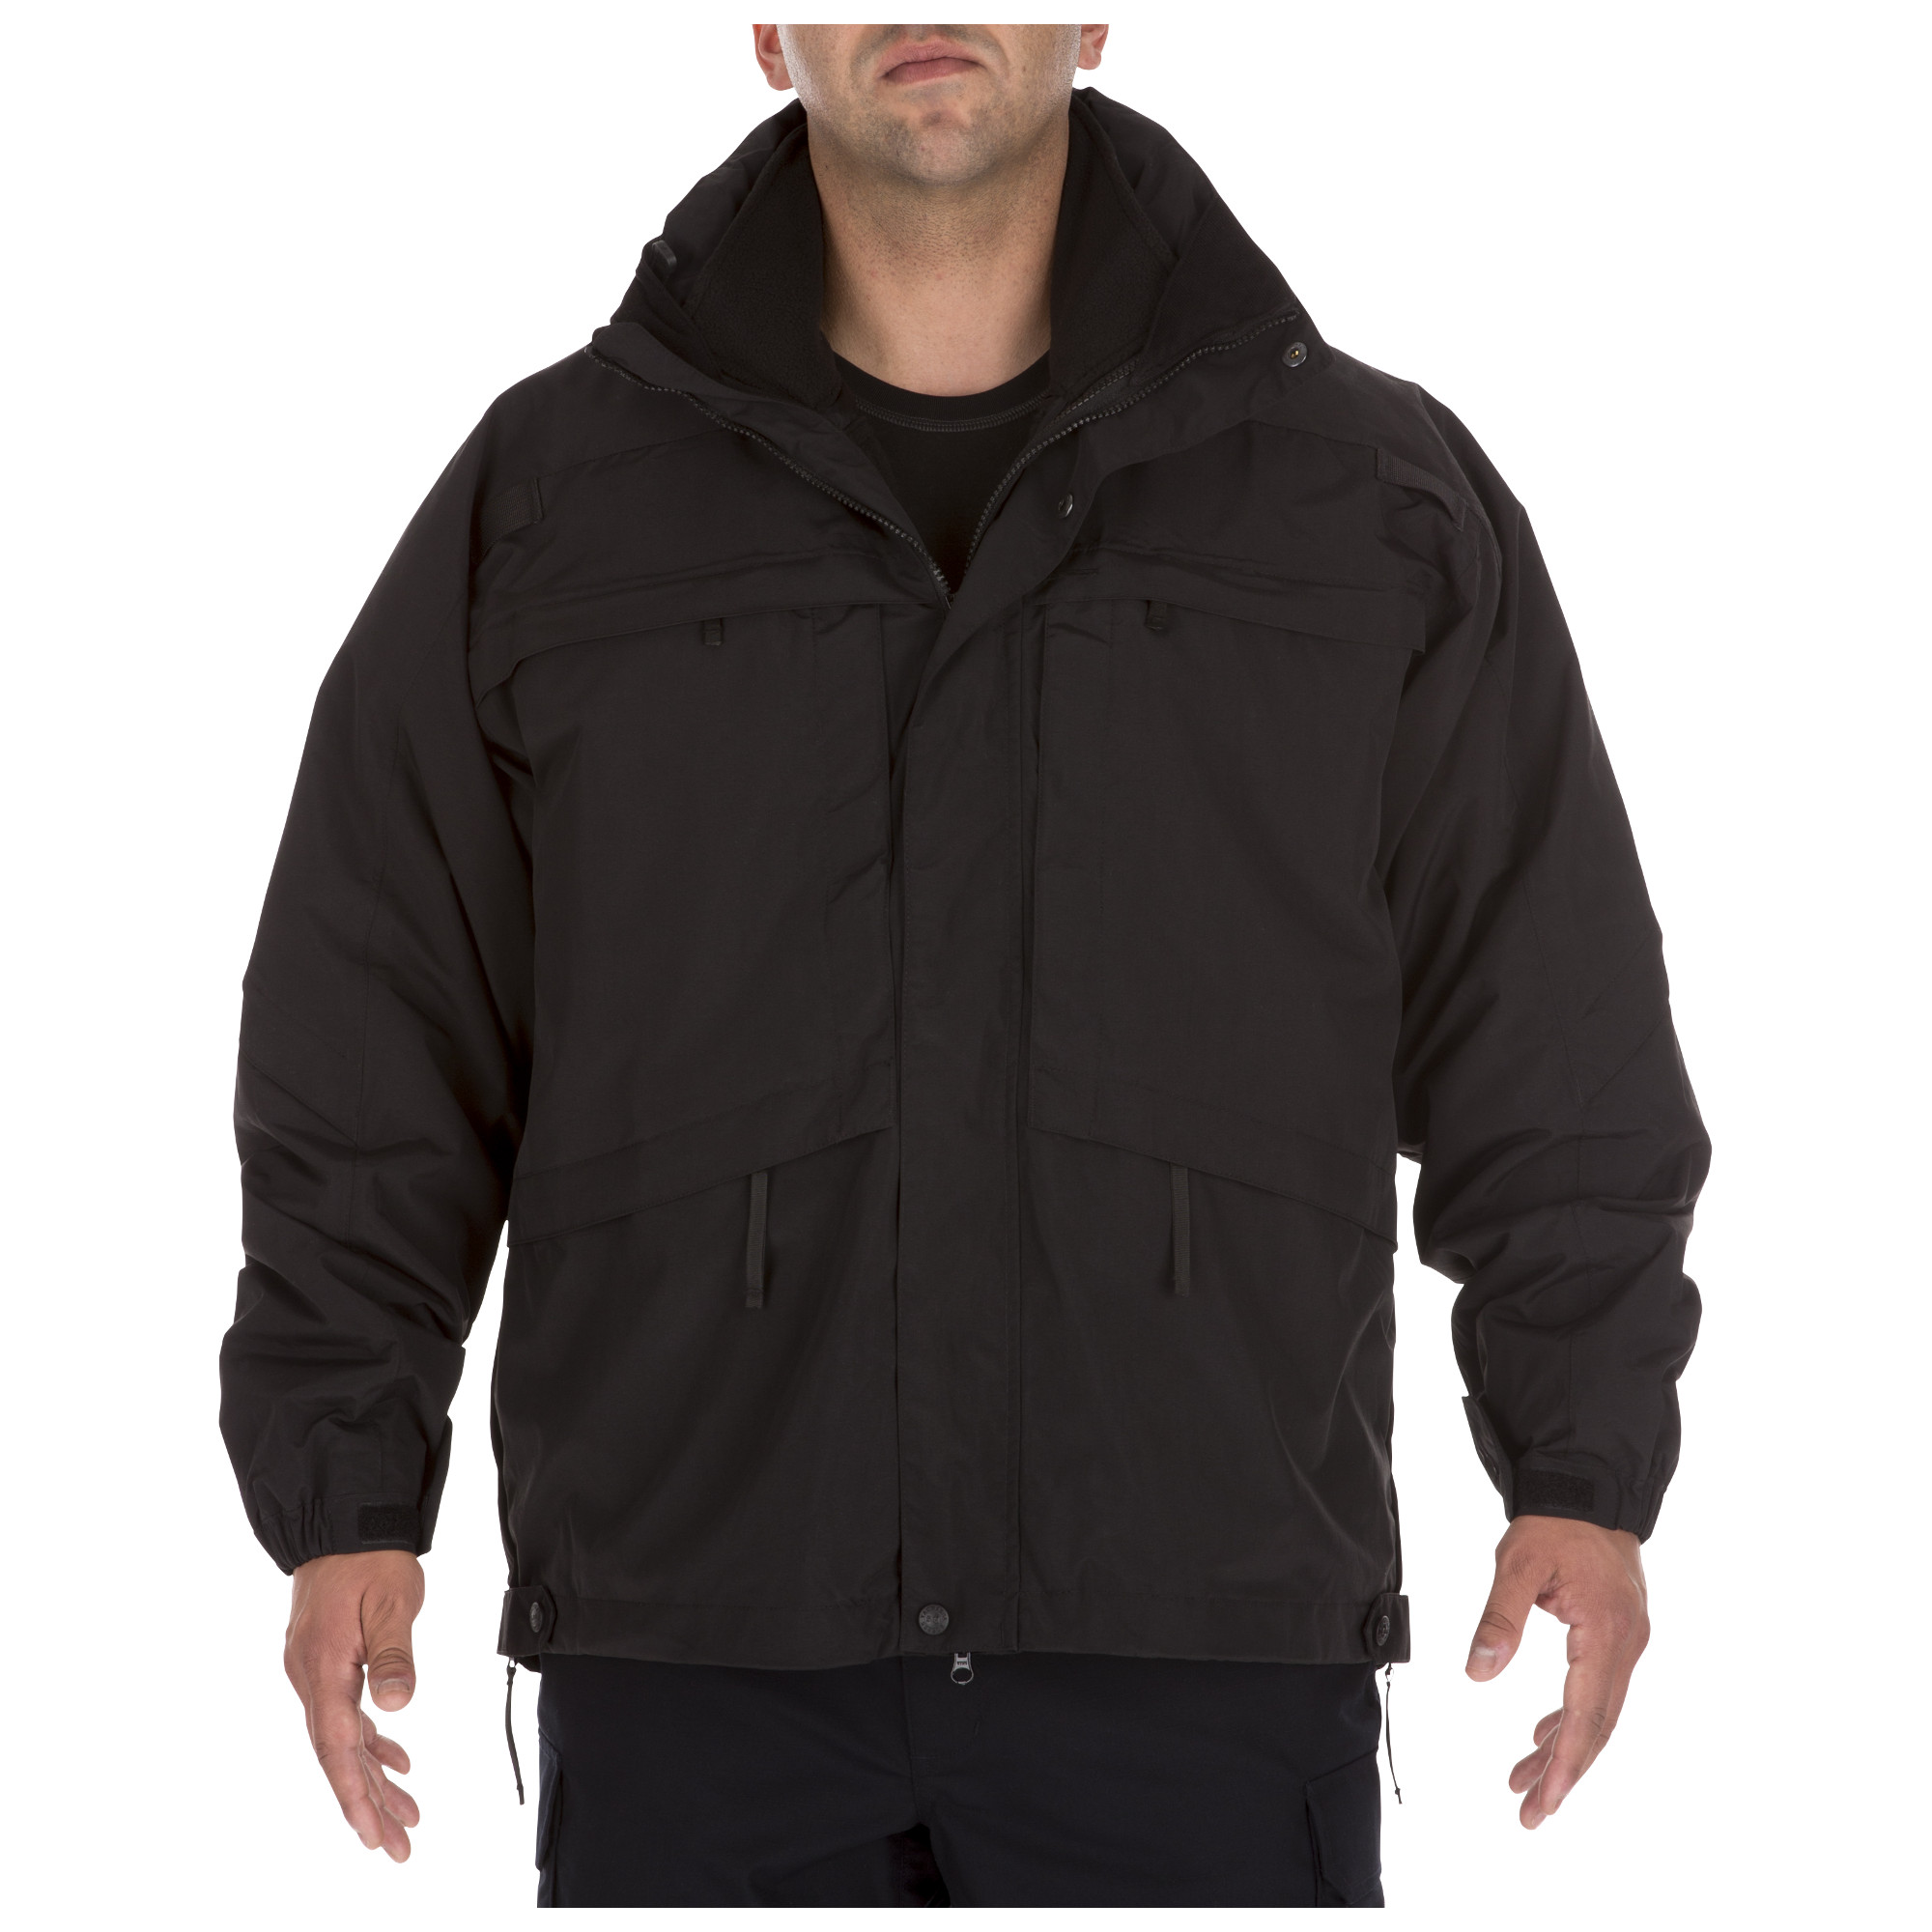 3-In-1 Parka™-5.11 Tactical